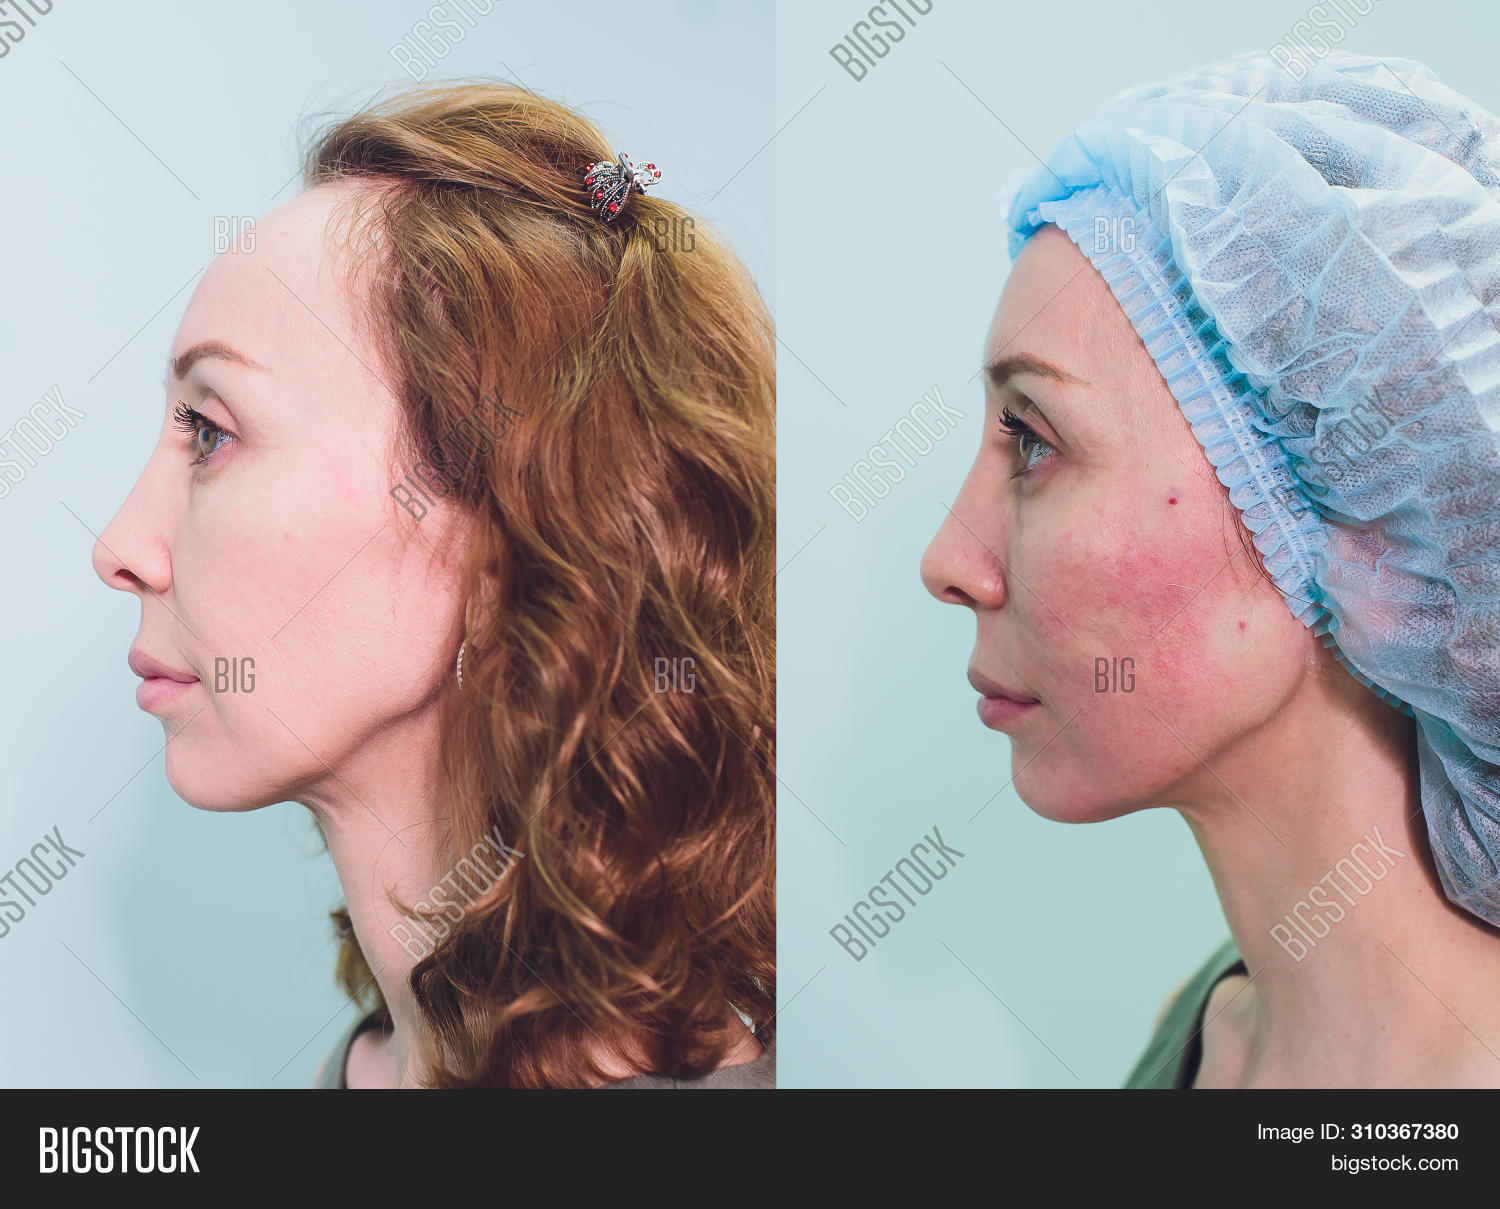 adult,aesthetic,aged,aging,anti,anti-aging,beautician,beautiful,beauty,care,clinic,close-up,cosmetic,cosmetology,doctor,excess,face,facial,female,filler,girl,gold,health,healthy,injection,lifting,medic,medical,medicine,mesothreads,middle-aged,needle,operation,patient,pdo,plastic,procedure,professional,regenerative,shape,skin,specialist,surgery,therapy,thread,threadlift,treatment,white,woman,young